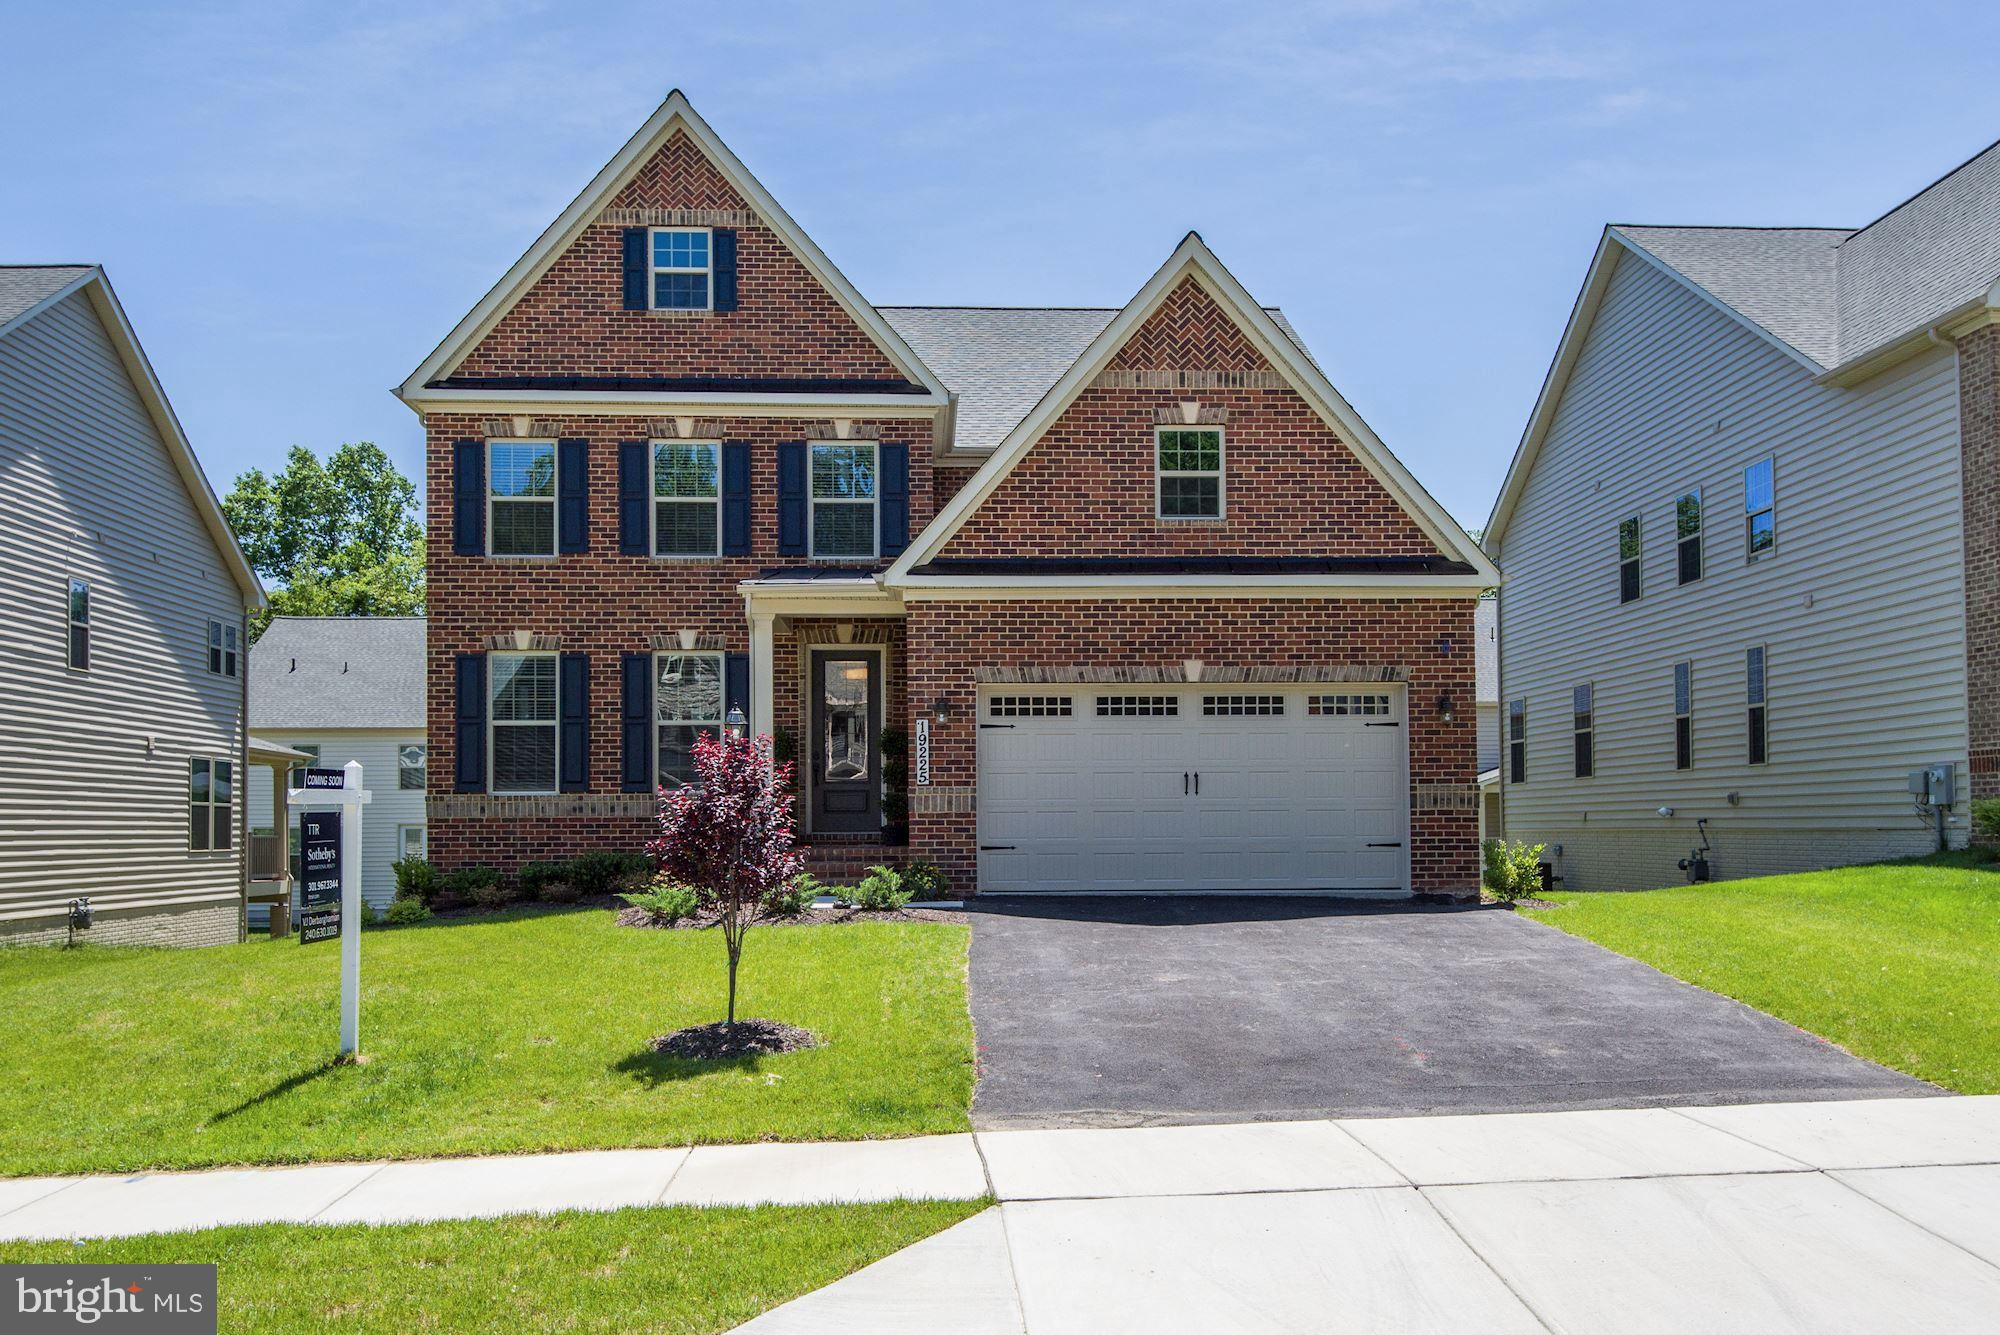 19225 ABBEY MANOR DRIVE, BROOKEVILLE, MD 20833